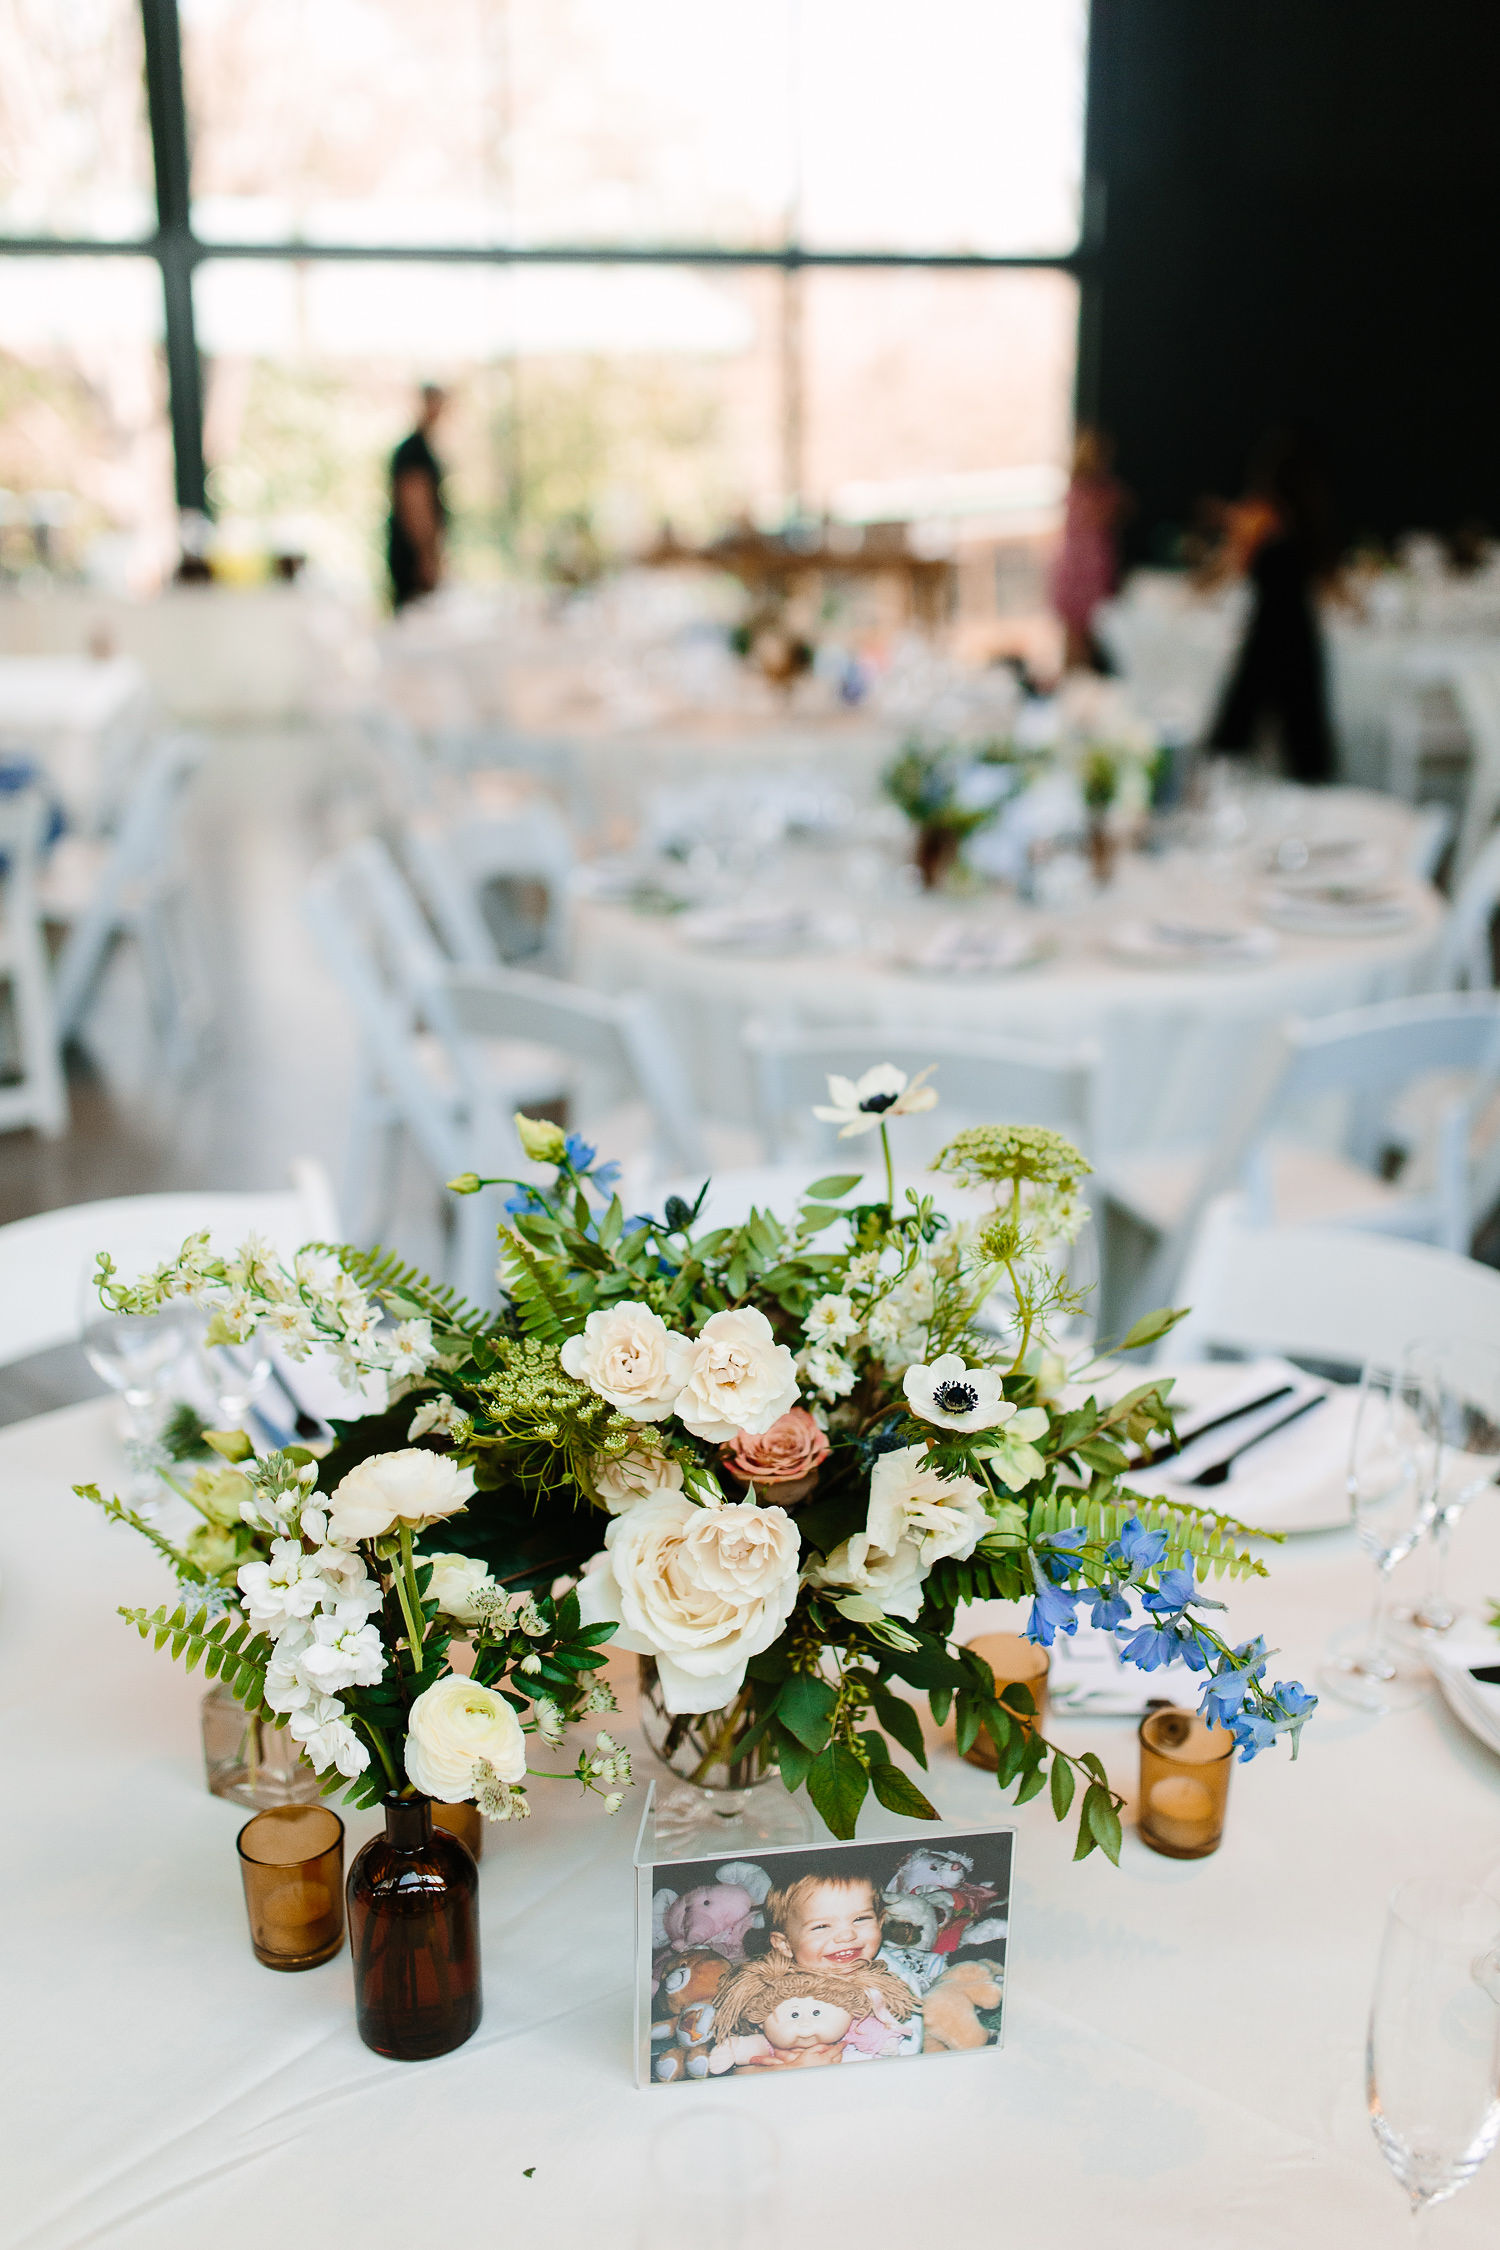 Knoxville Botanical Gardens// Wedding by Suzy Collins Photography Knoxville Botanical Gardens// Wedding by Suzy Collins Photography